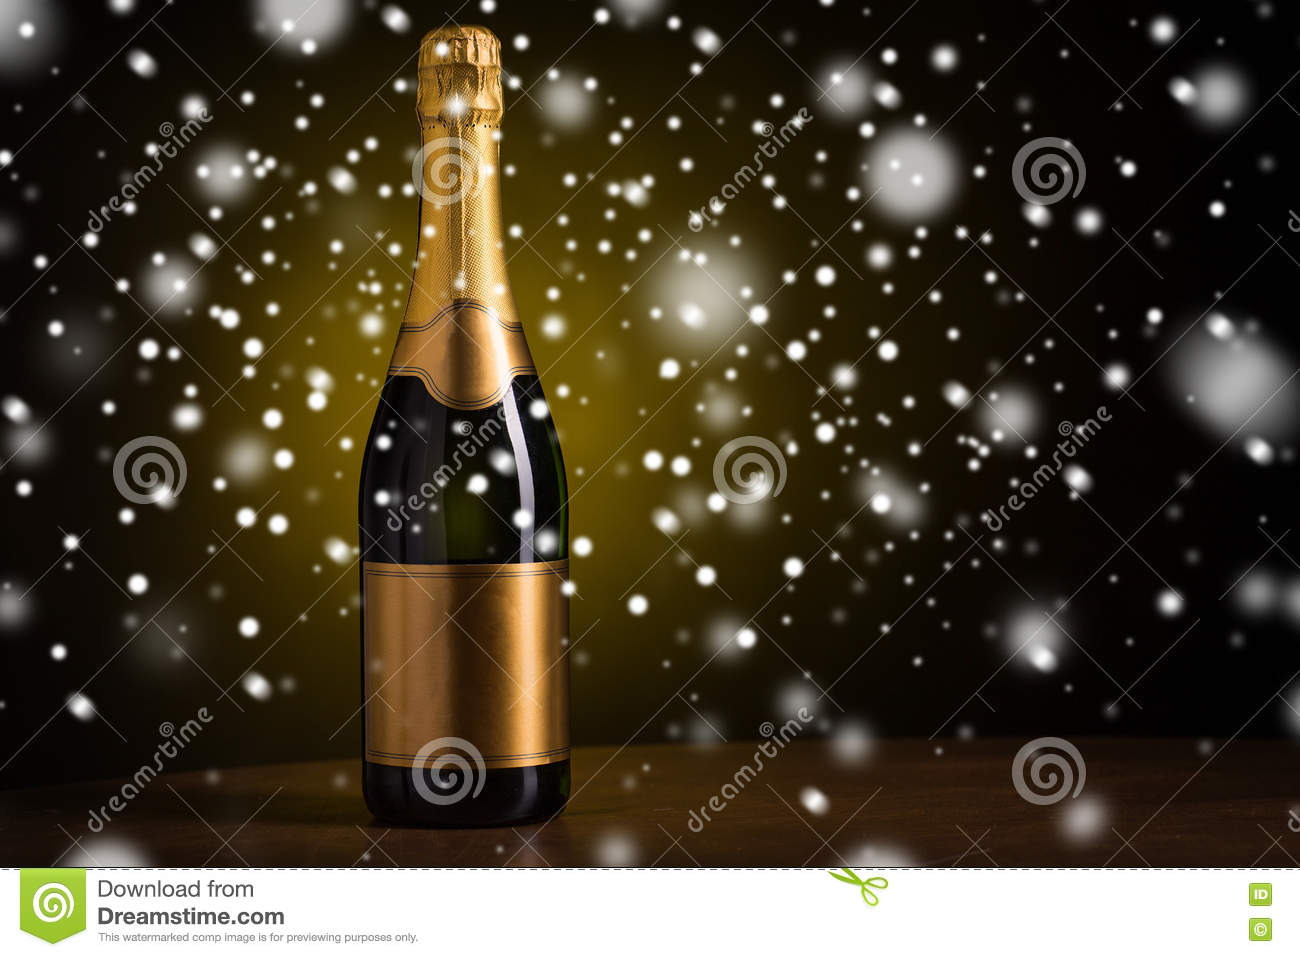 drink alcohol christmas new year and winter holidays concept bottle of champagne with blank golden label on wooden table over dark background and snow